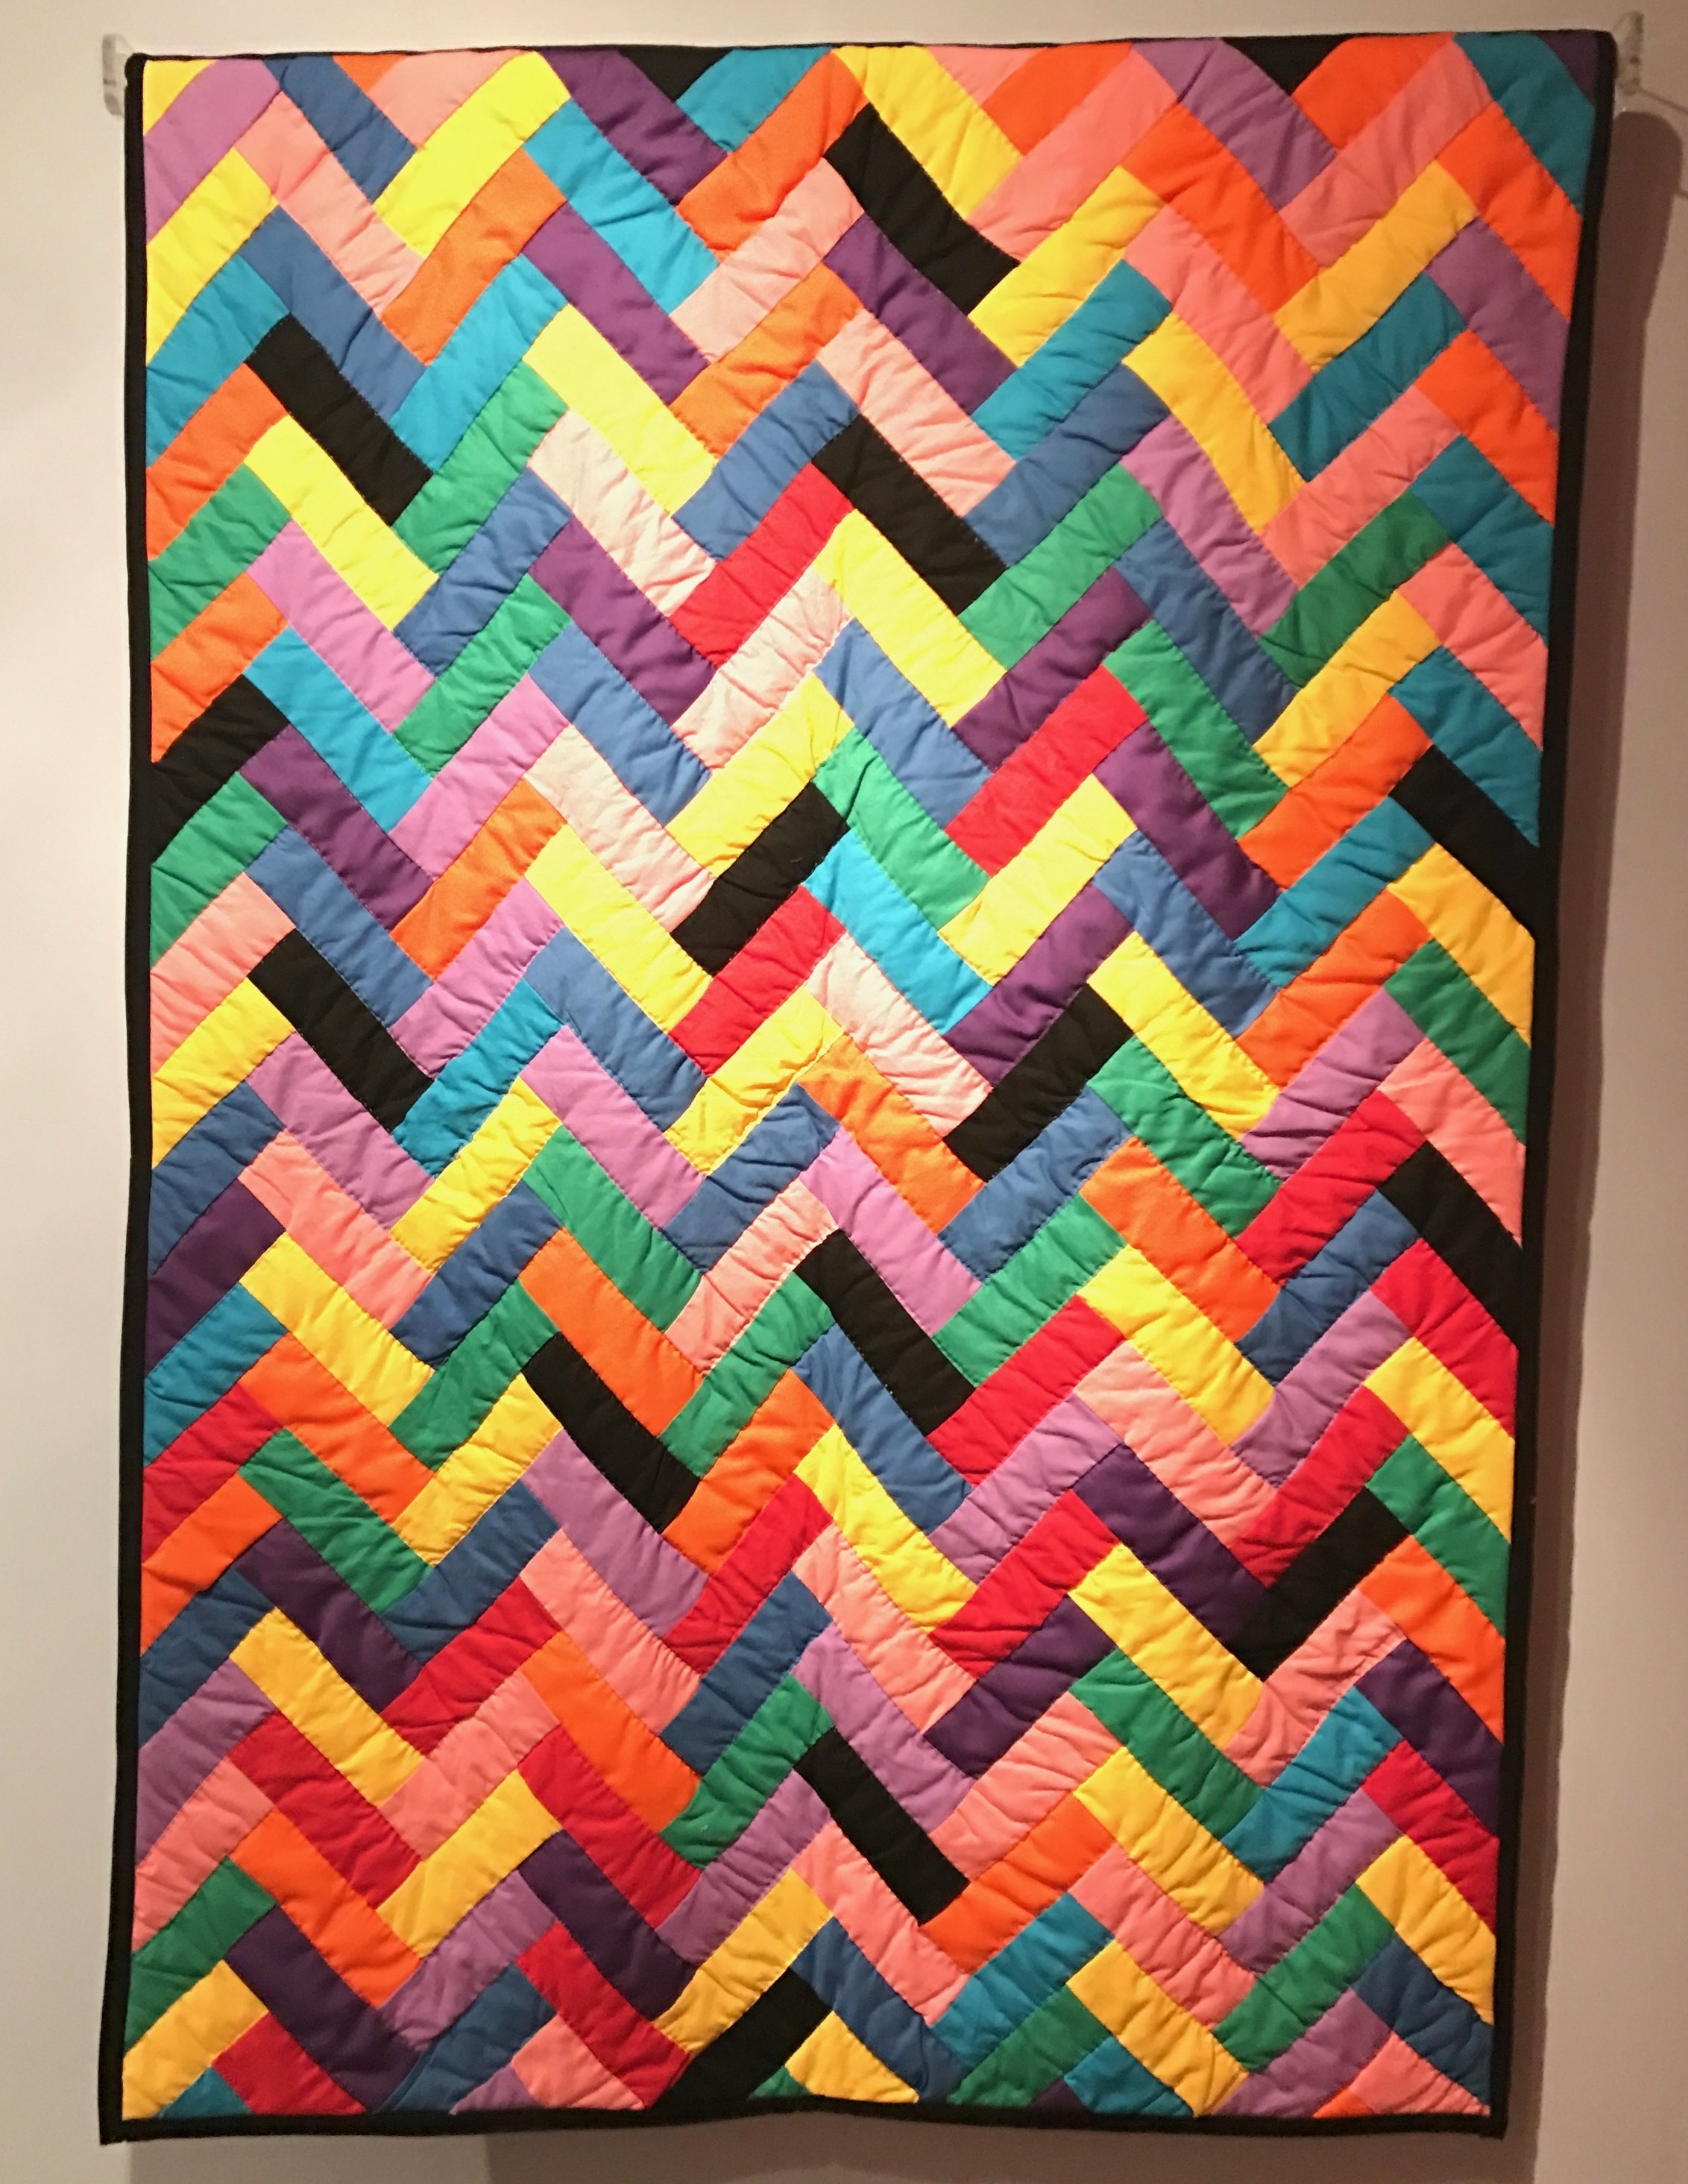 """""""Joseph's Coat of Many Colors"""" made by the Gee's Bend quilters in 1980. The quilting community is incredible and their beautiful works have been featured in museum exhibitions around the country."""